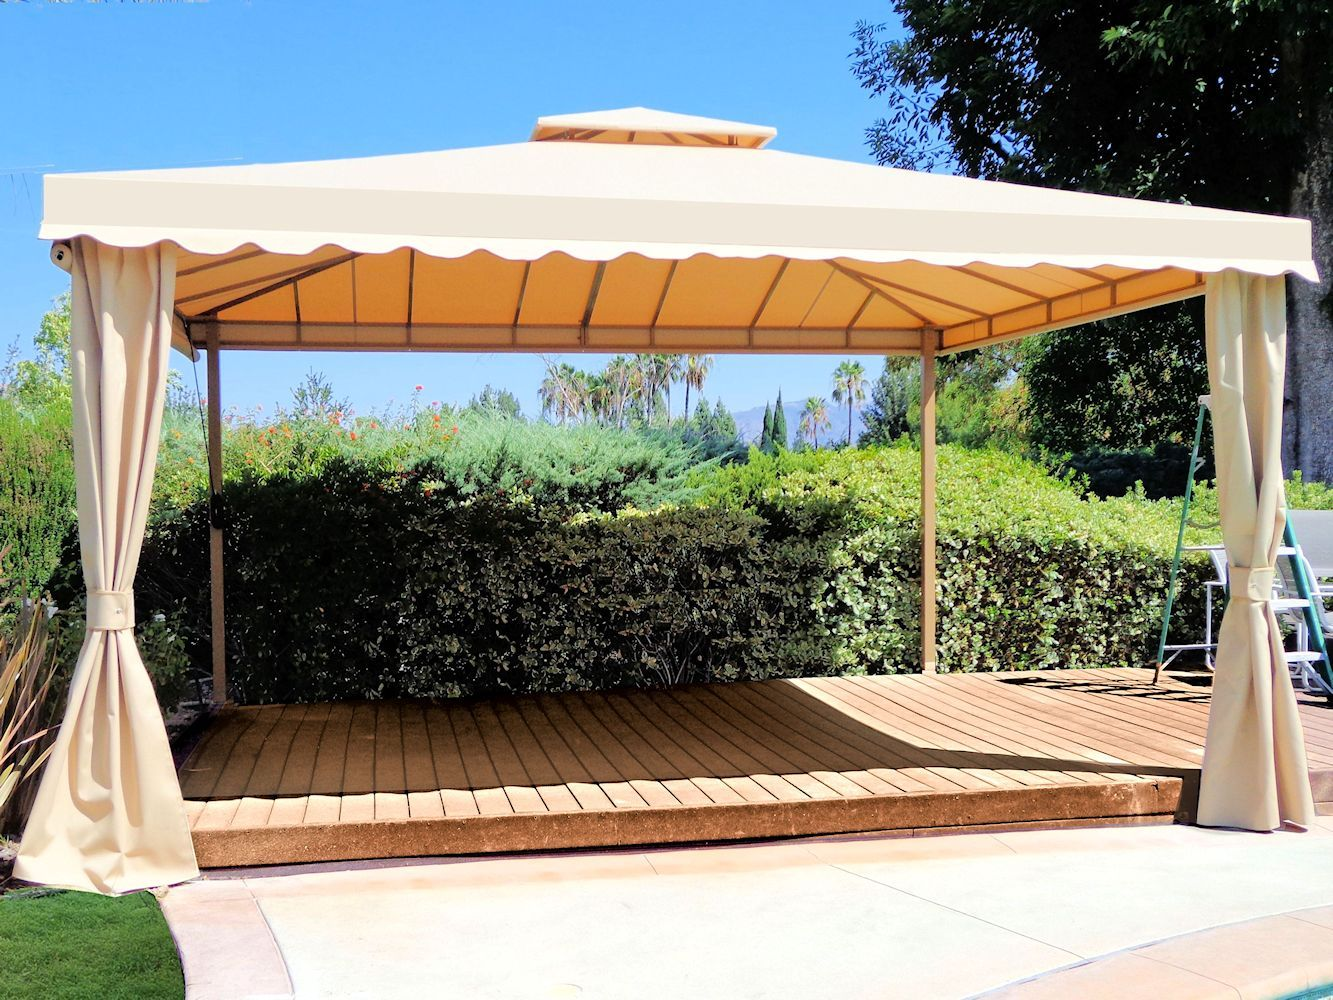 Custom Pool Cabanas By Superior Awning Let The Sun Shine Pool Cabana Custom Pools Cabana